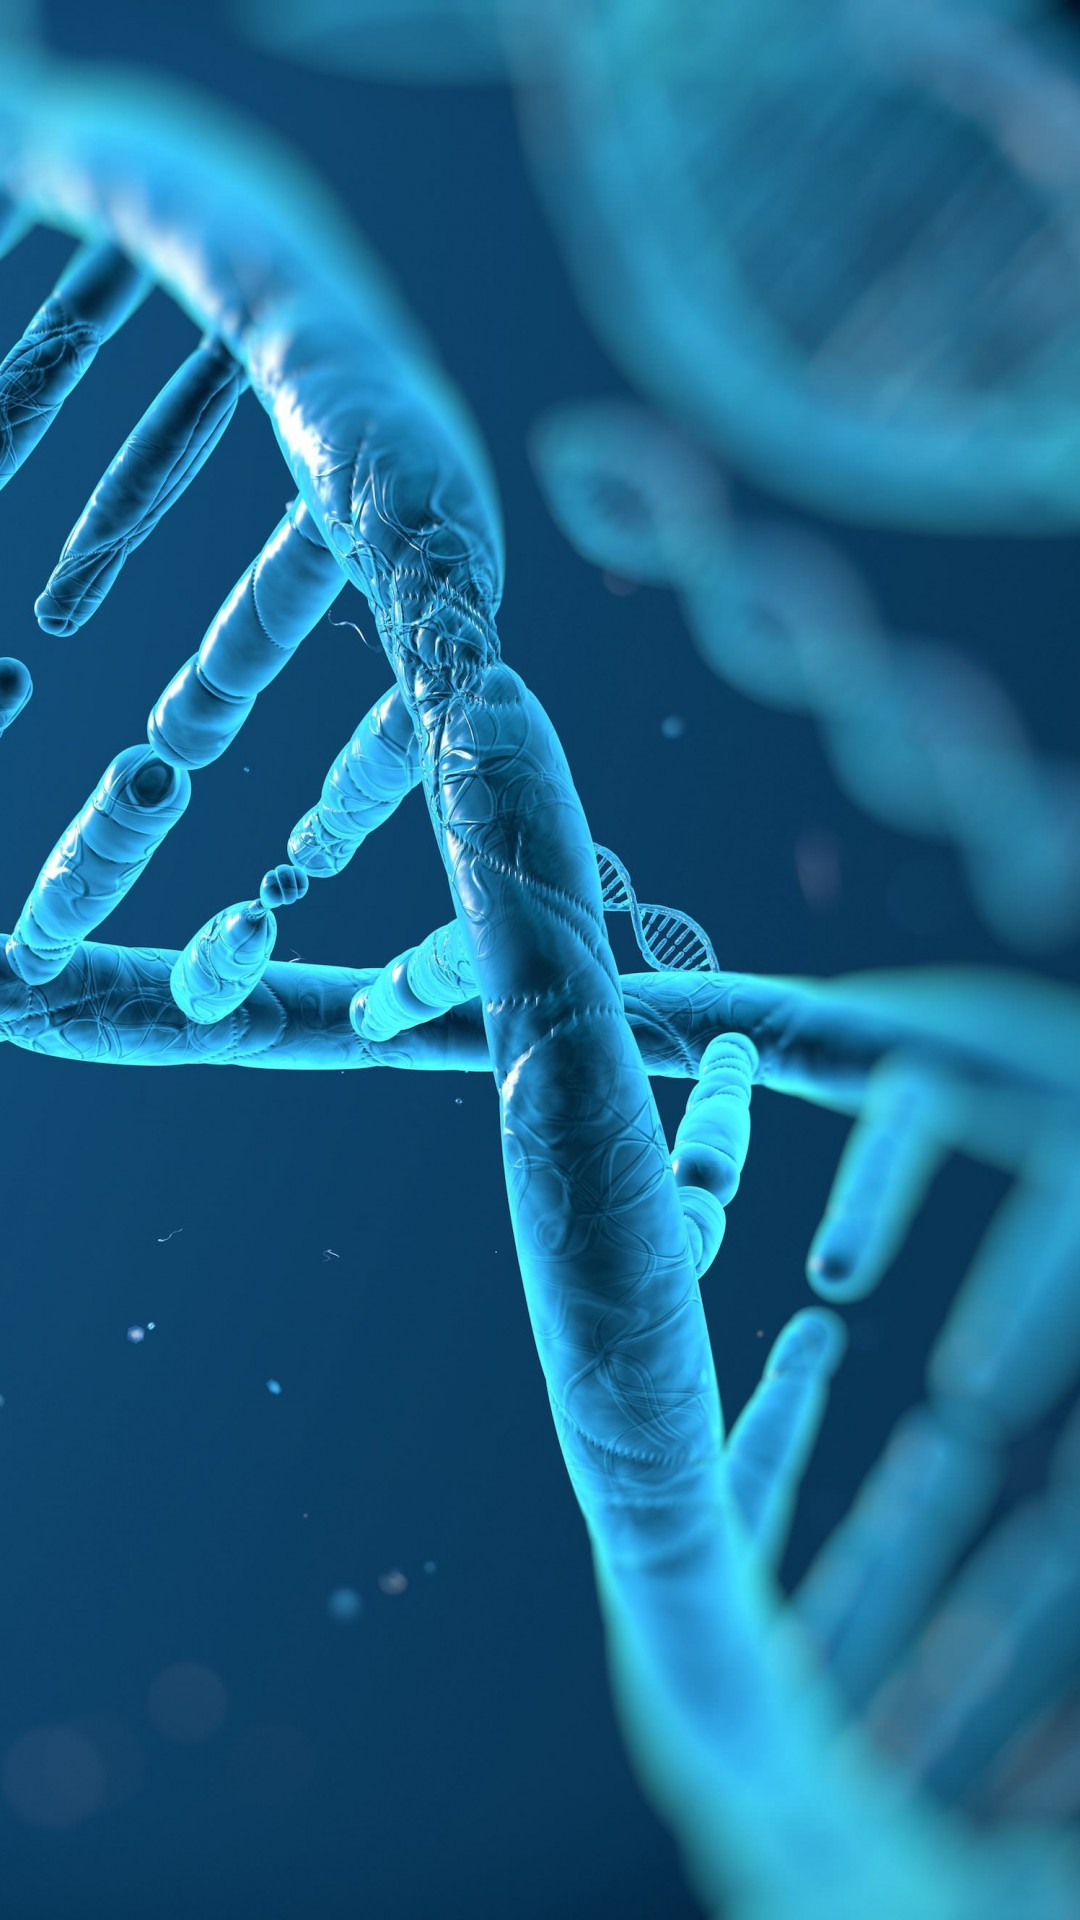 DNA Structure Wallpaper for SONY Xperia Z1